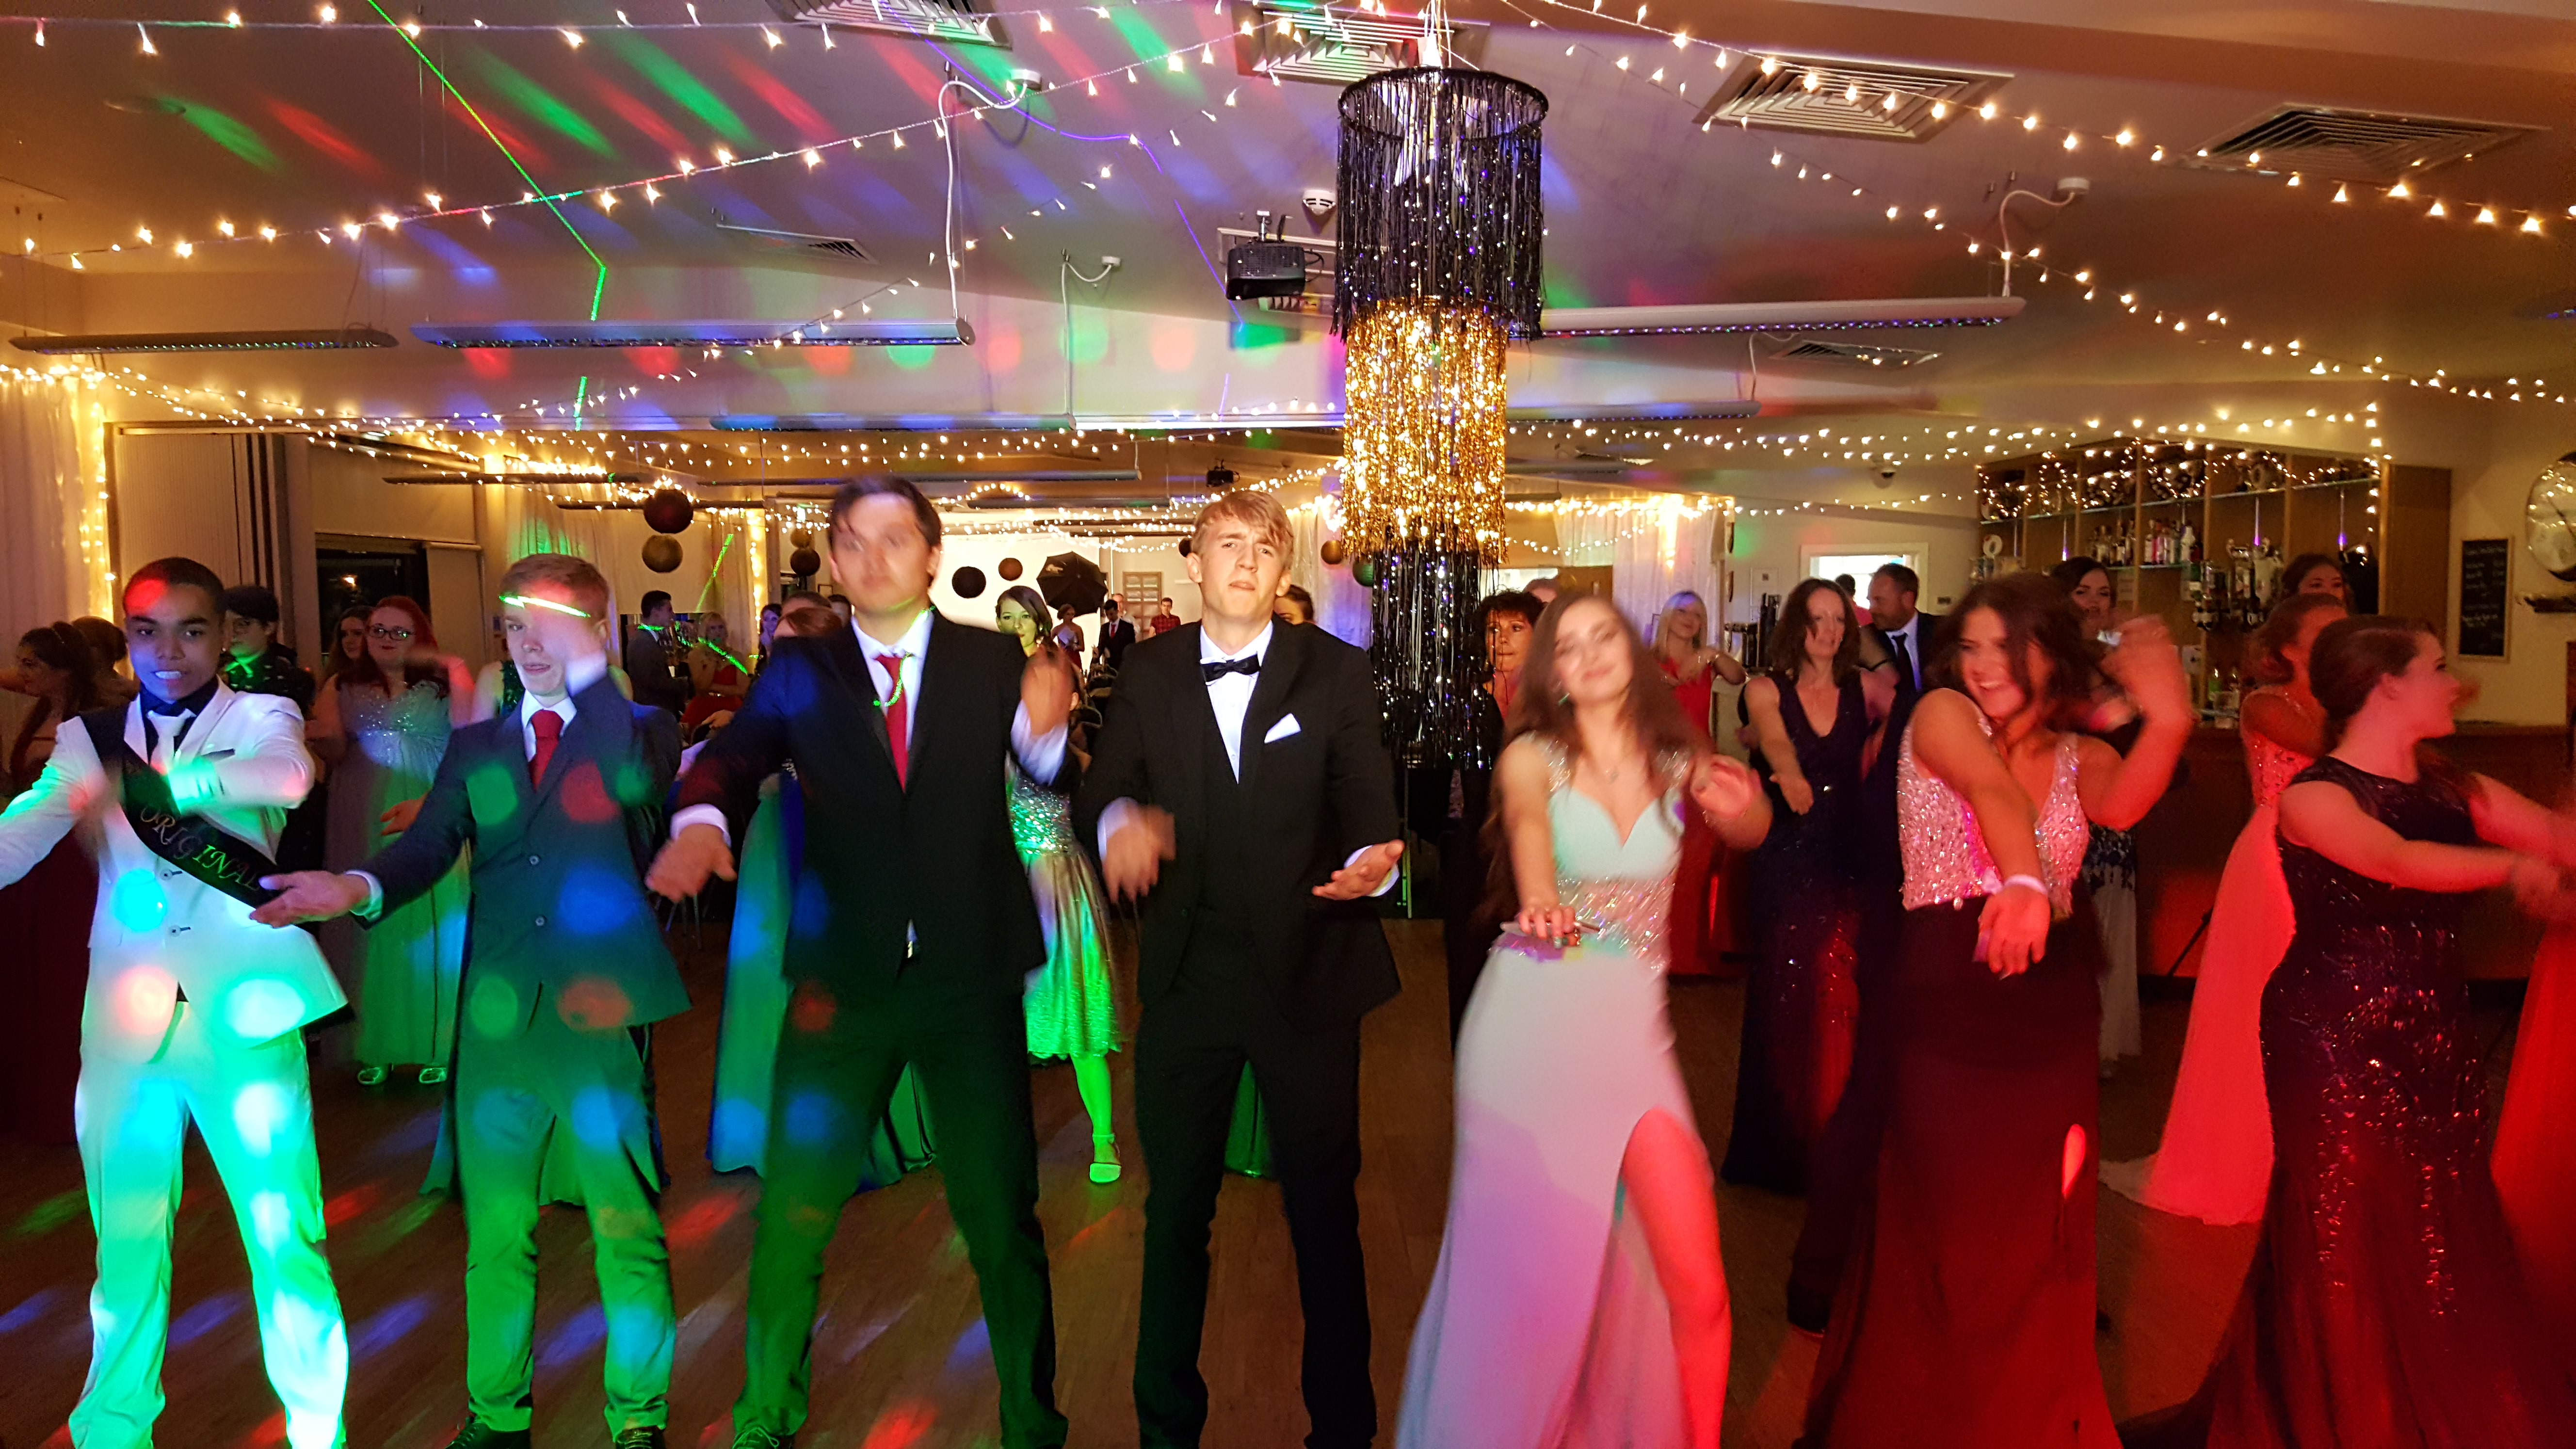 School Prom And Leavers Parties Professional Dj Hire